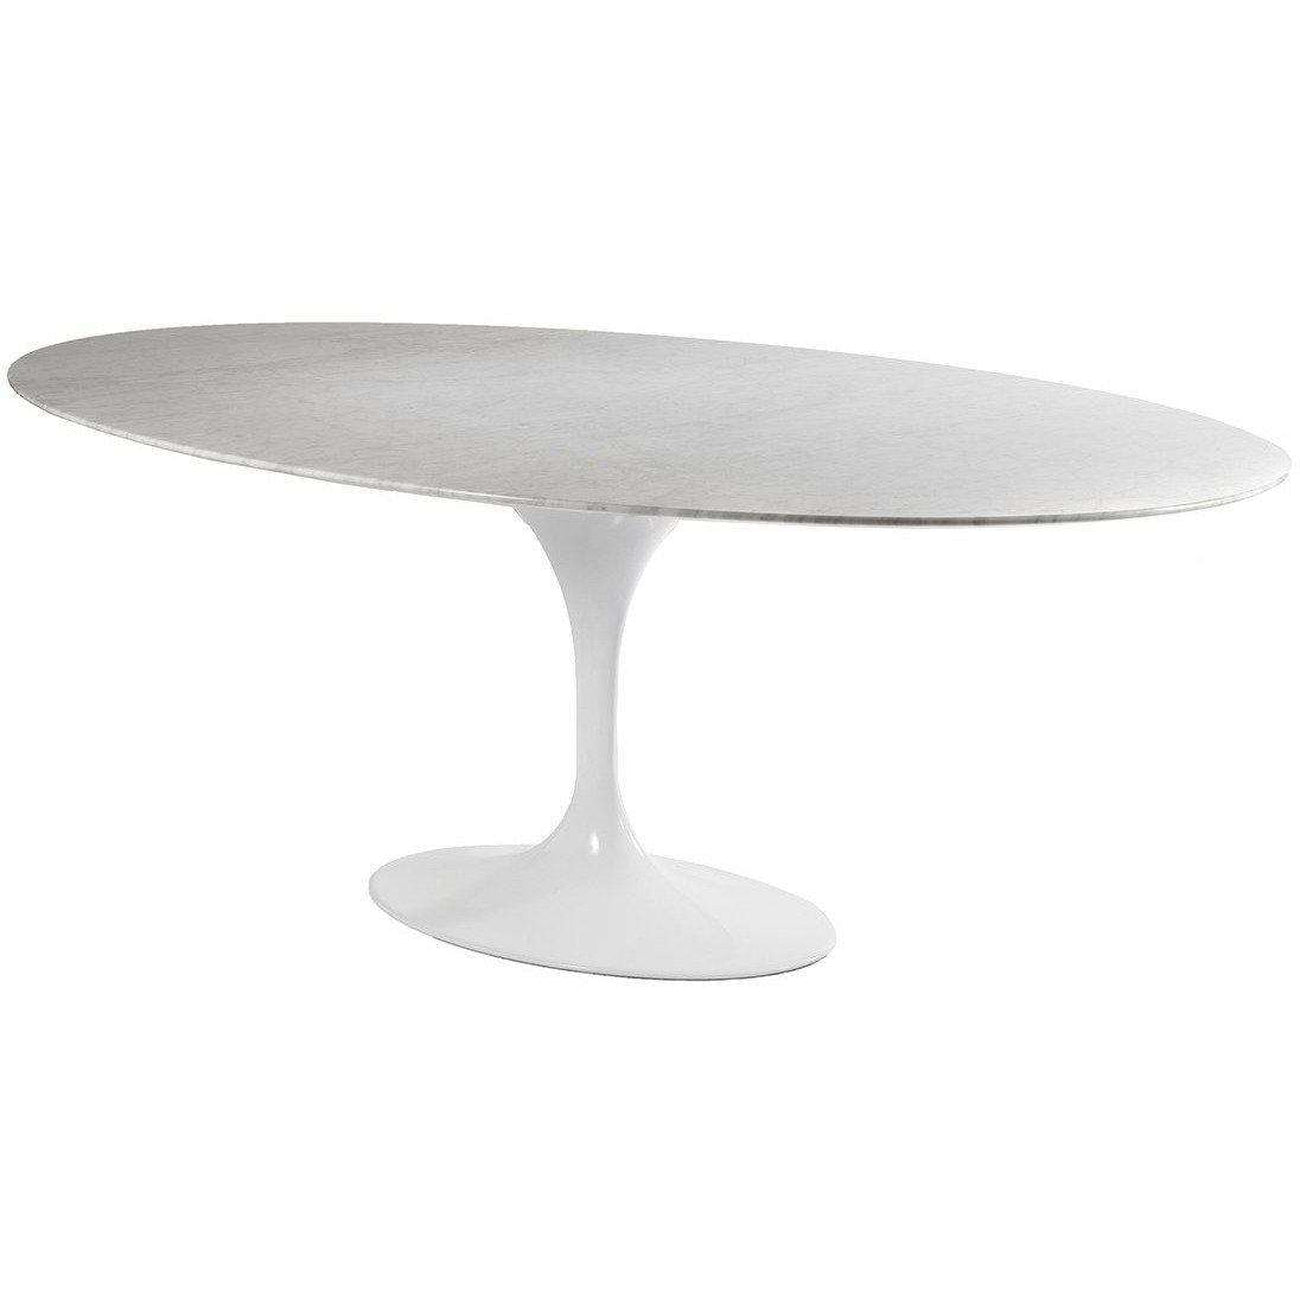 41ffb7a720a1 Mid-Century Modern Reproduction Marble Tulip Dining Table - 79